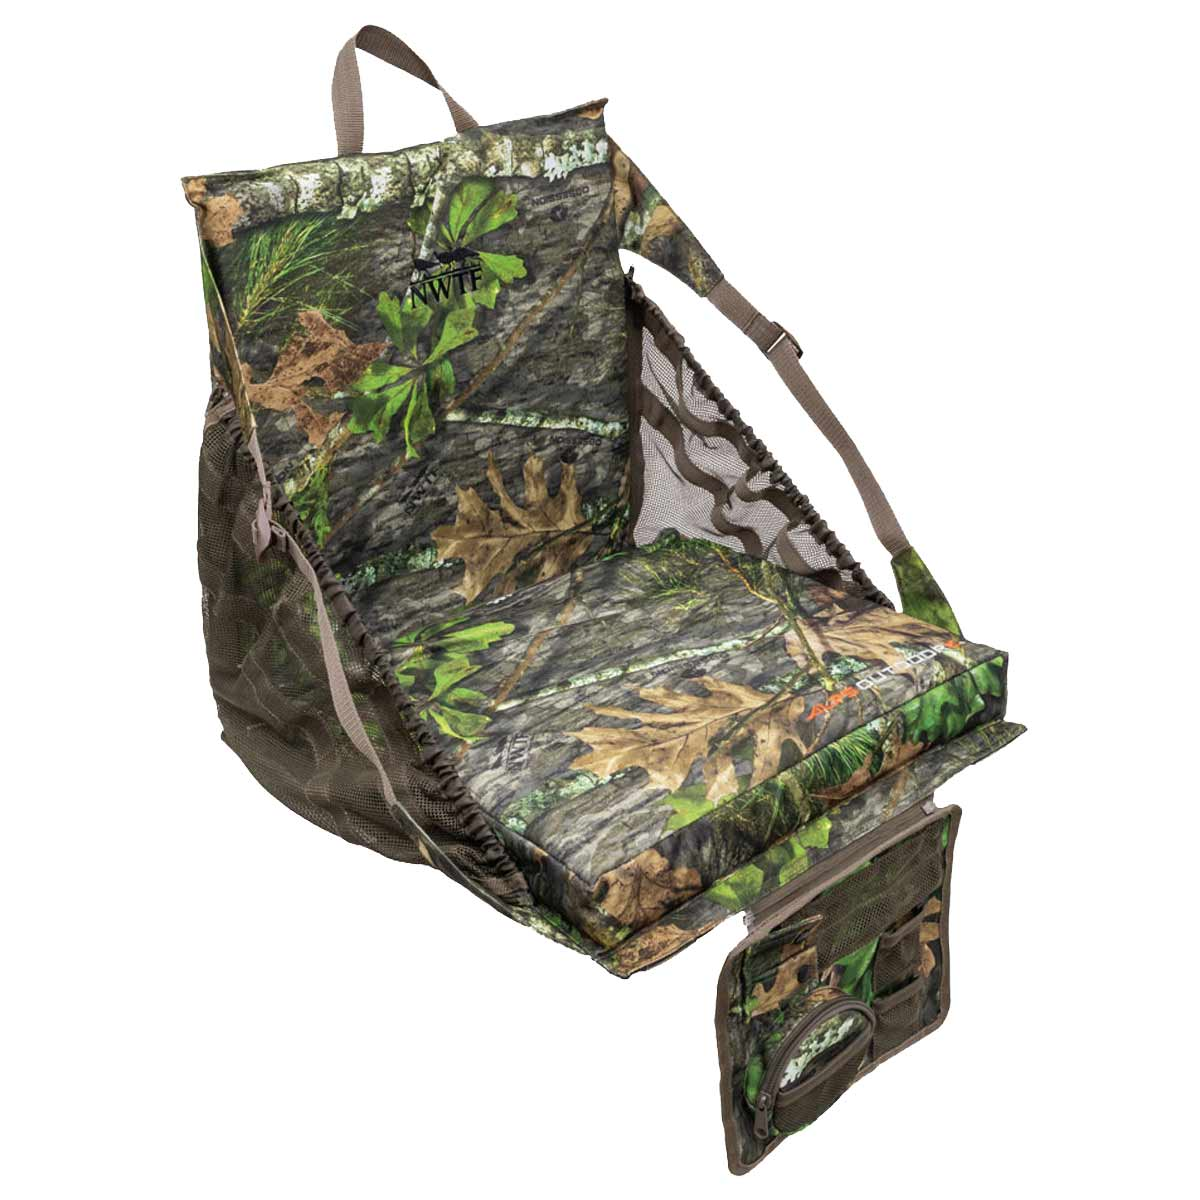 Alps NWTF Scout Chair, Mossy Oay Obsession